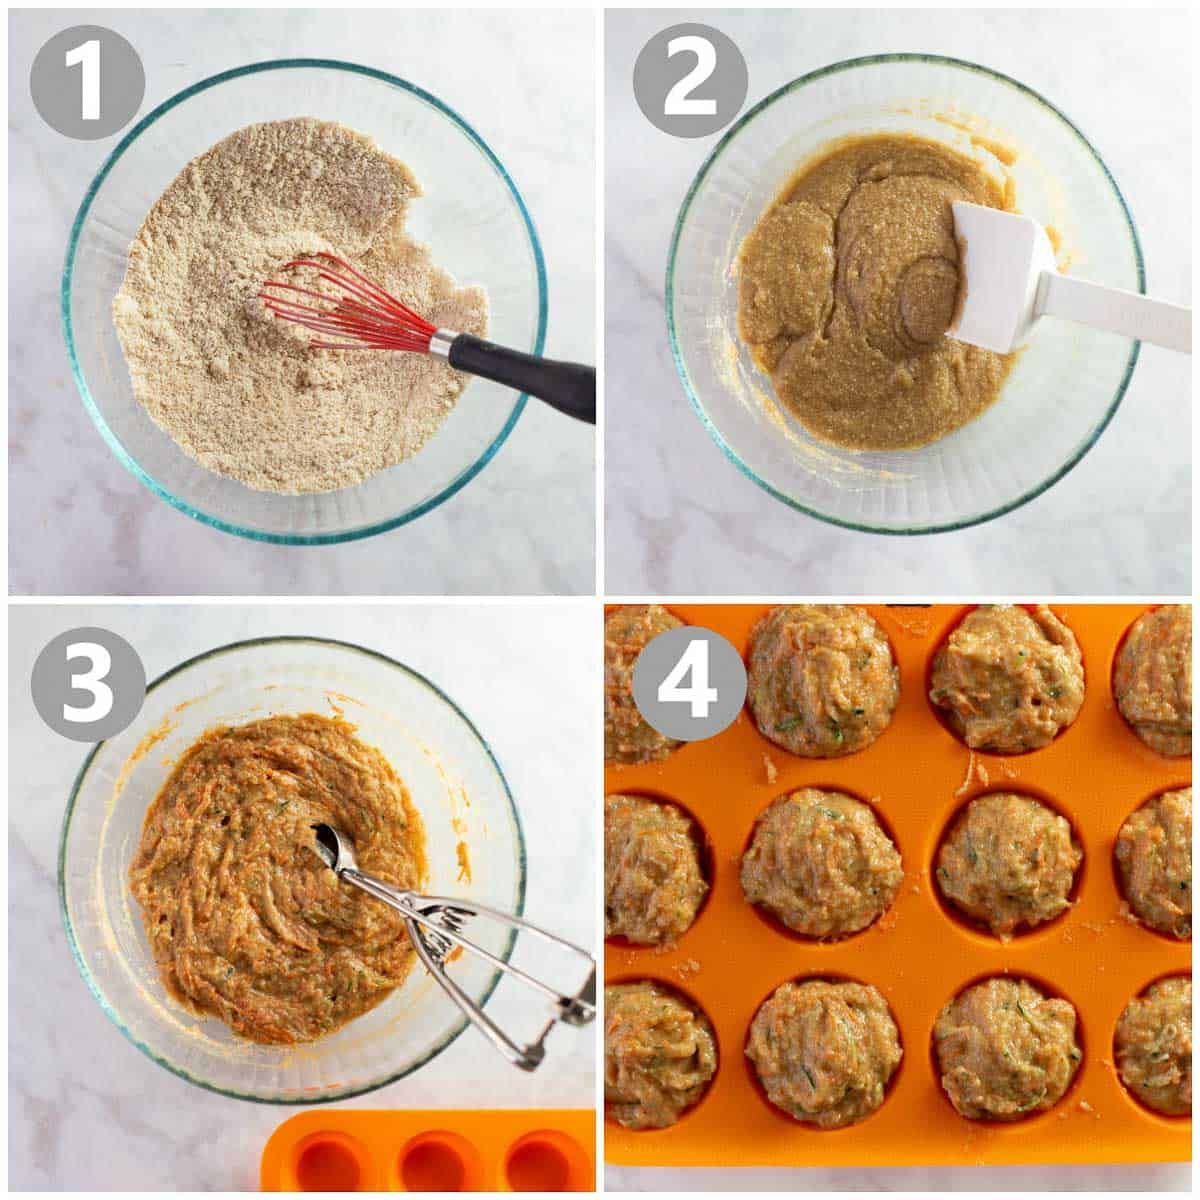 4 step-by-step photos show how to make the batter for a muffin recipe